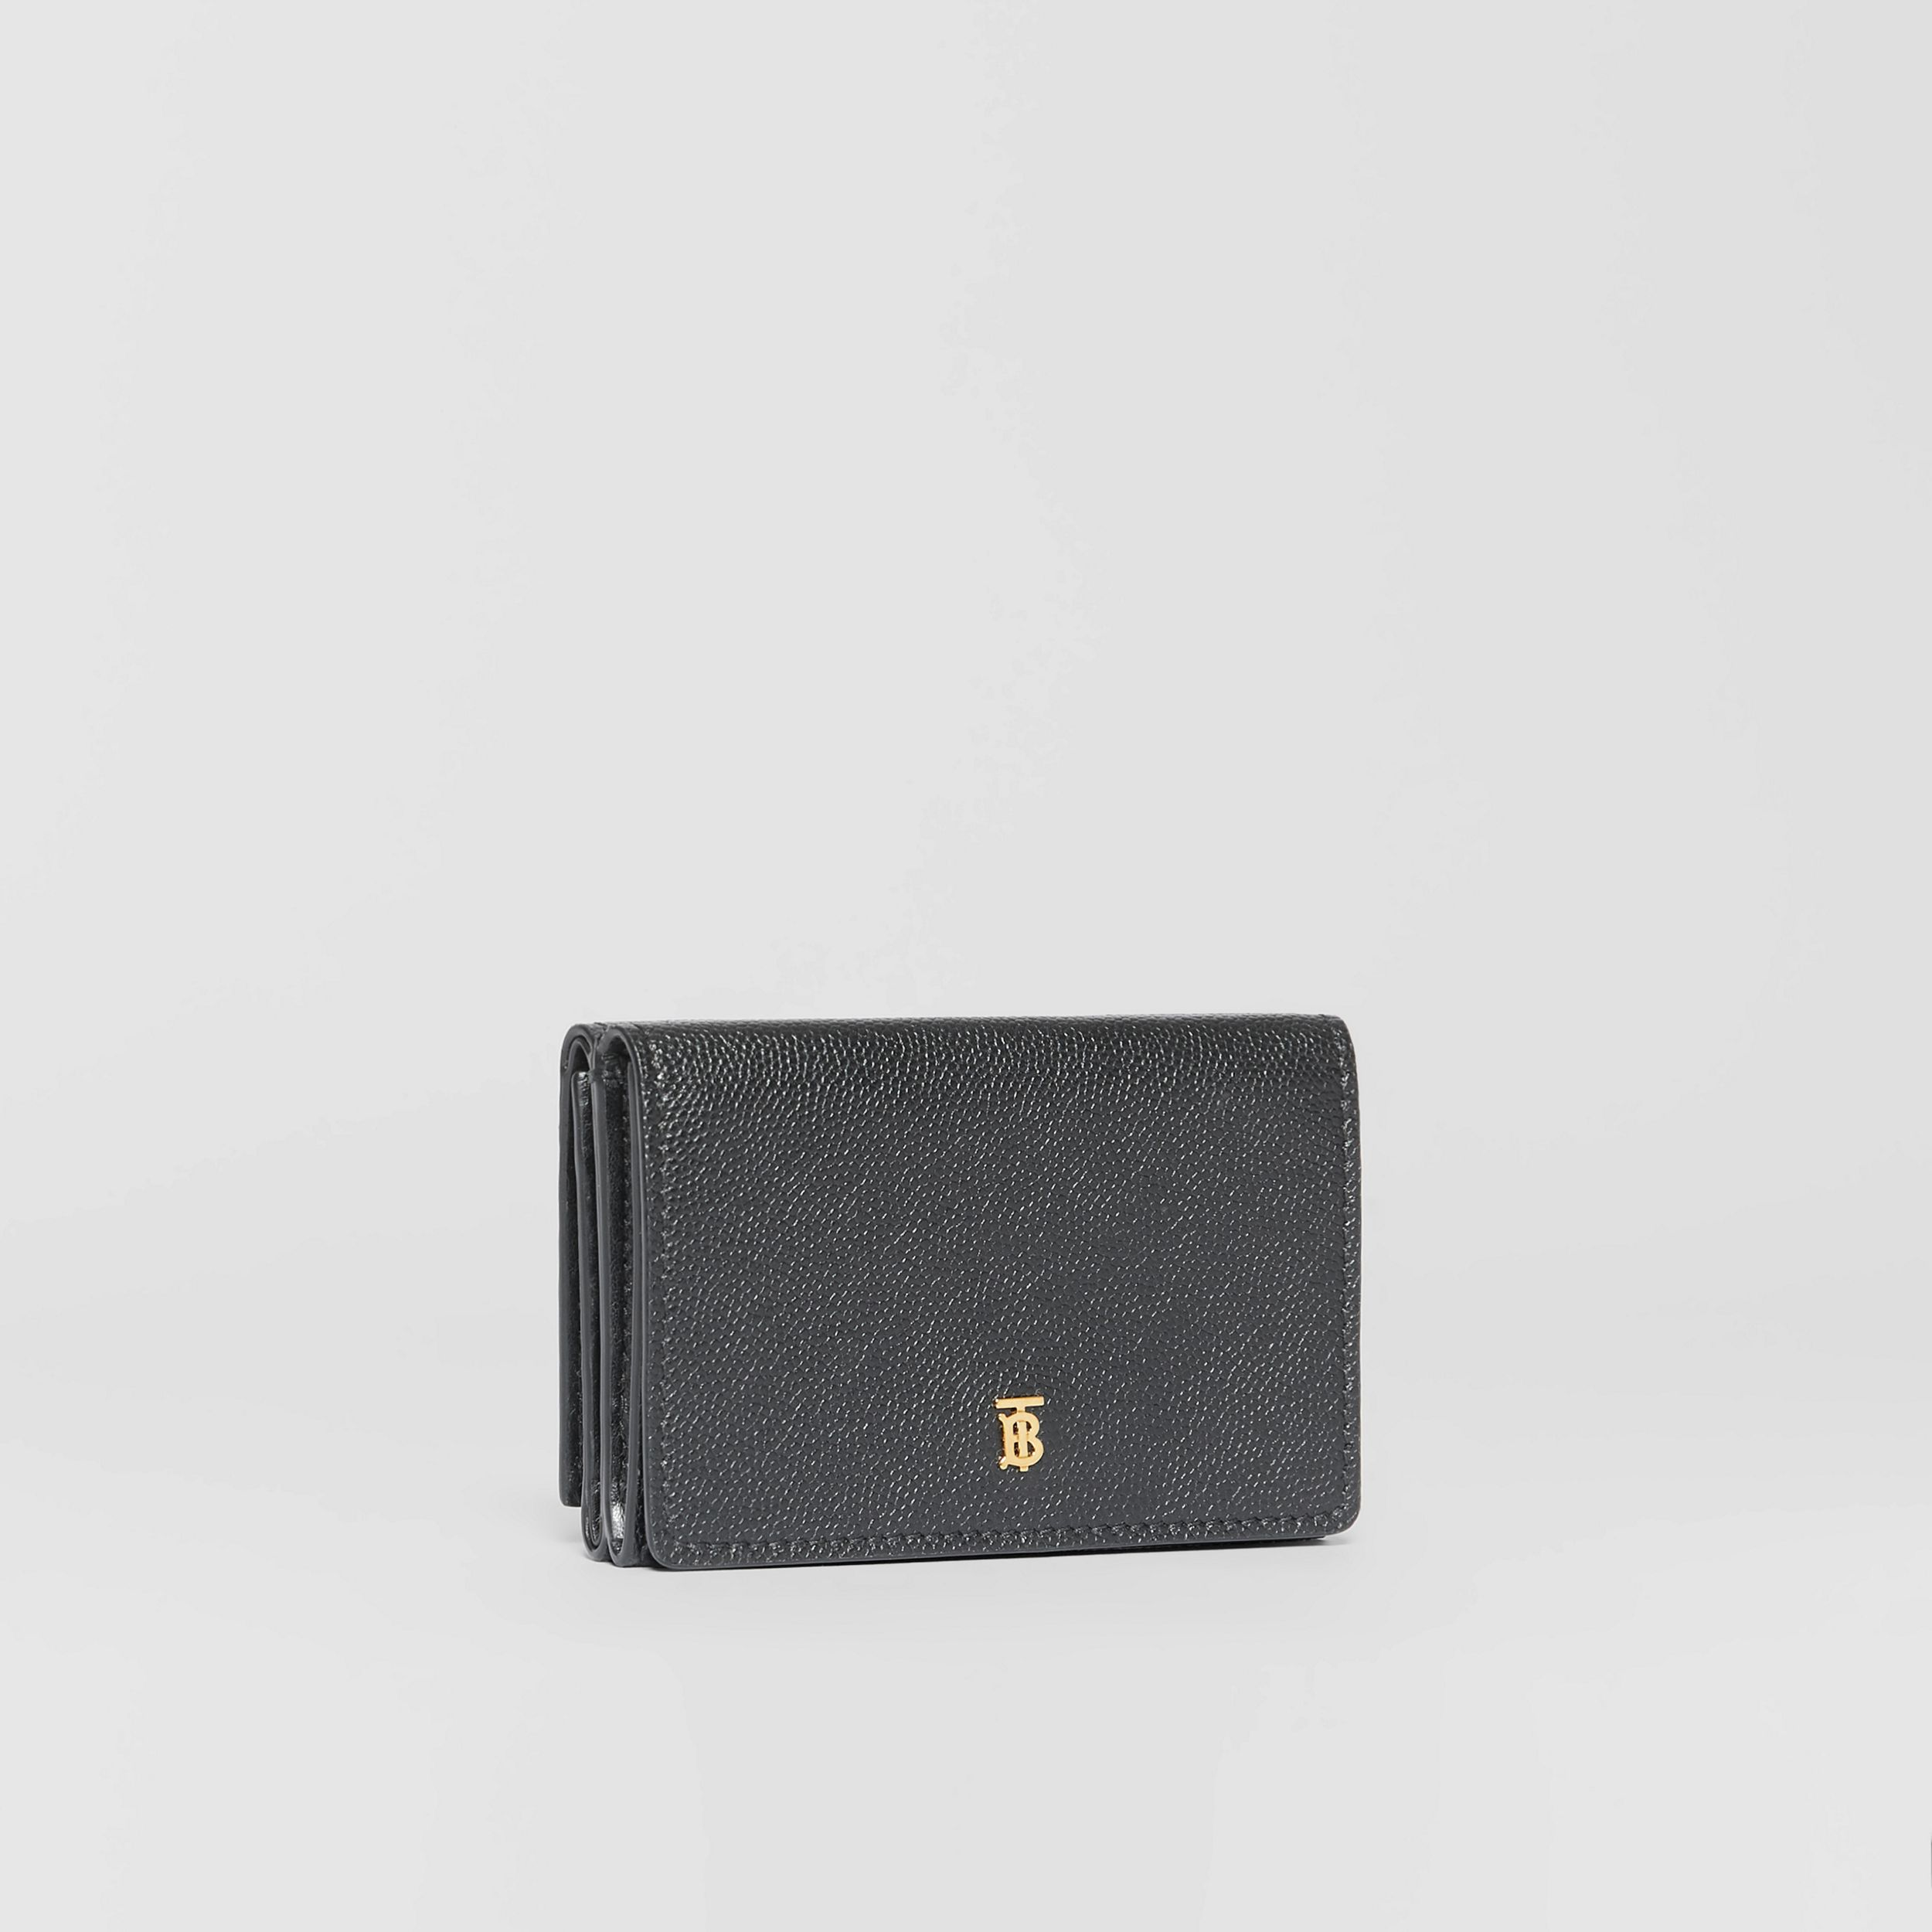 Small Grainy Leather Folding Wallet in Black - Women | Burberry - 4